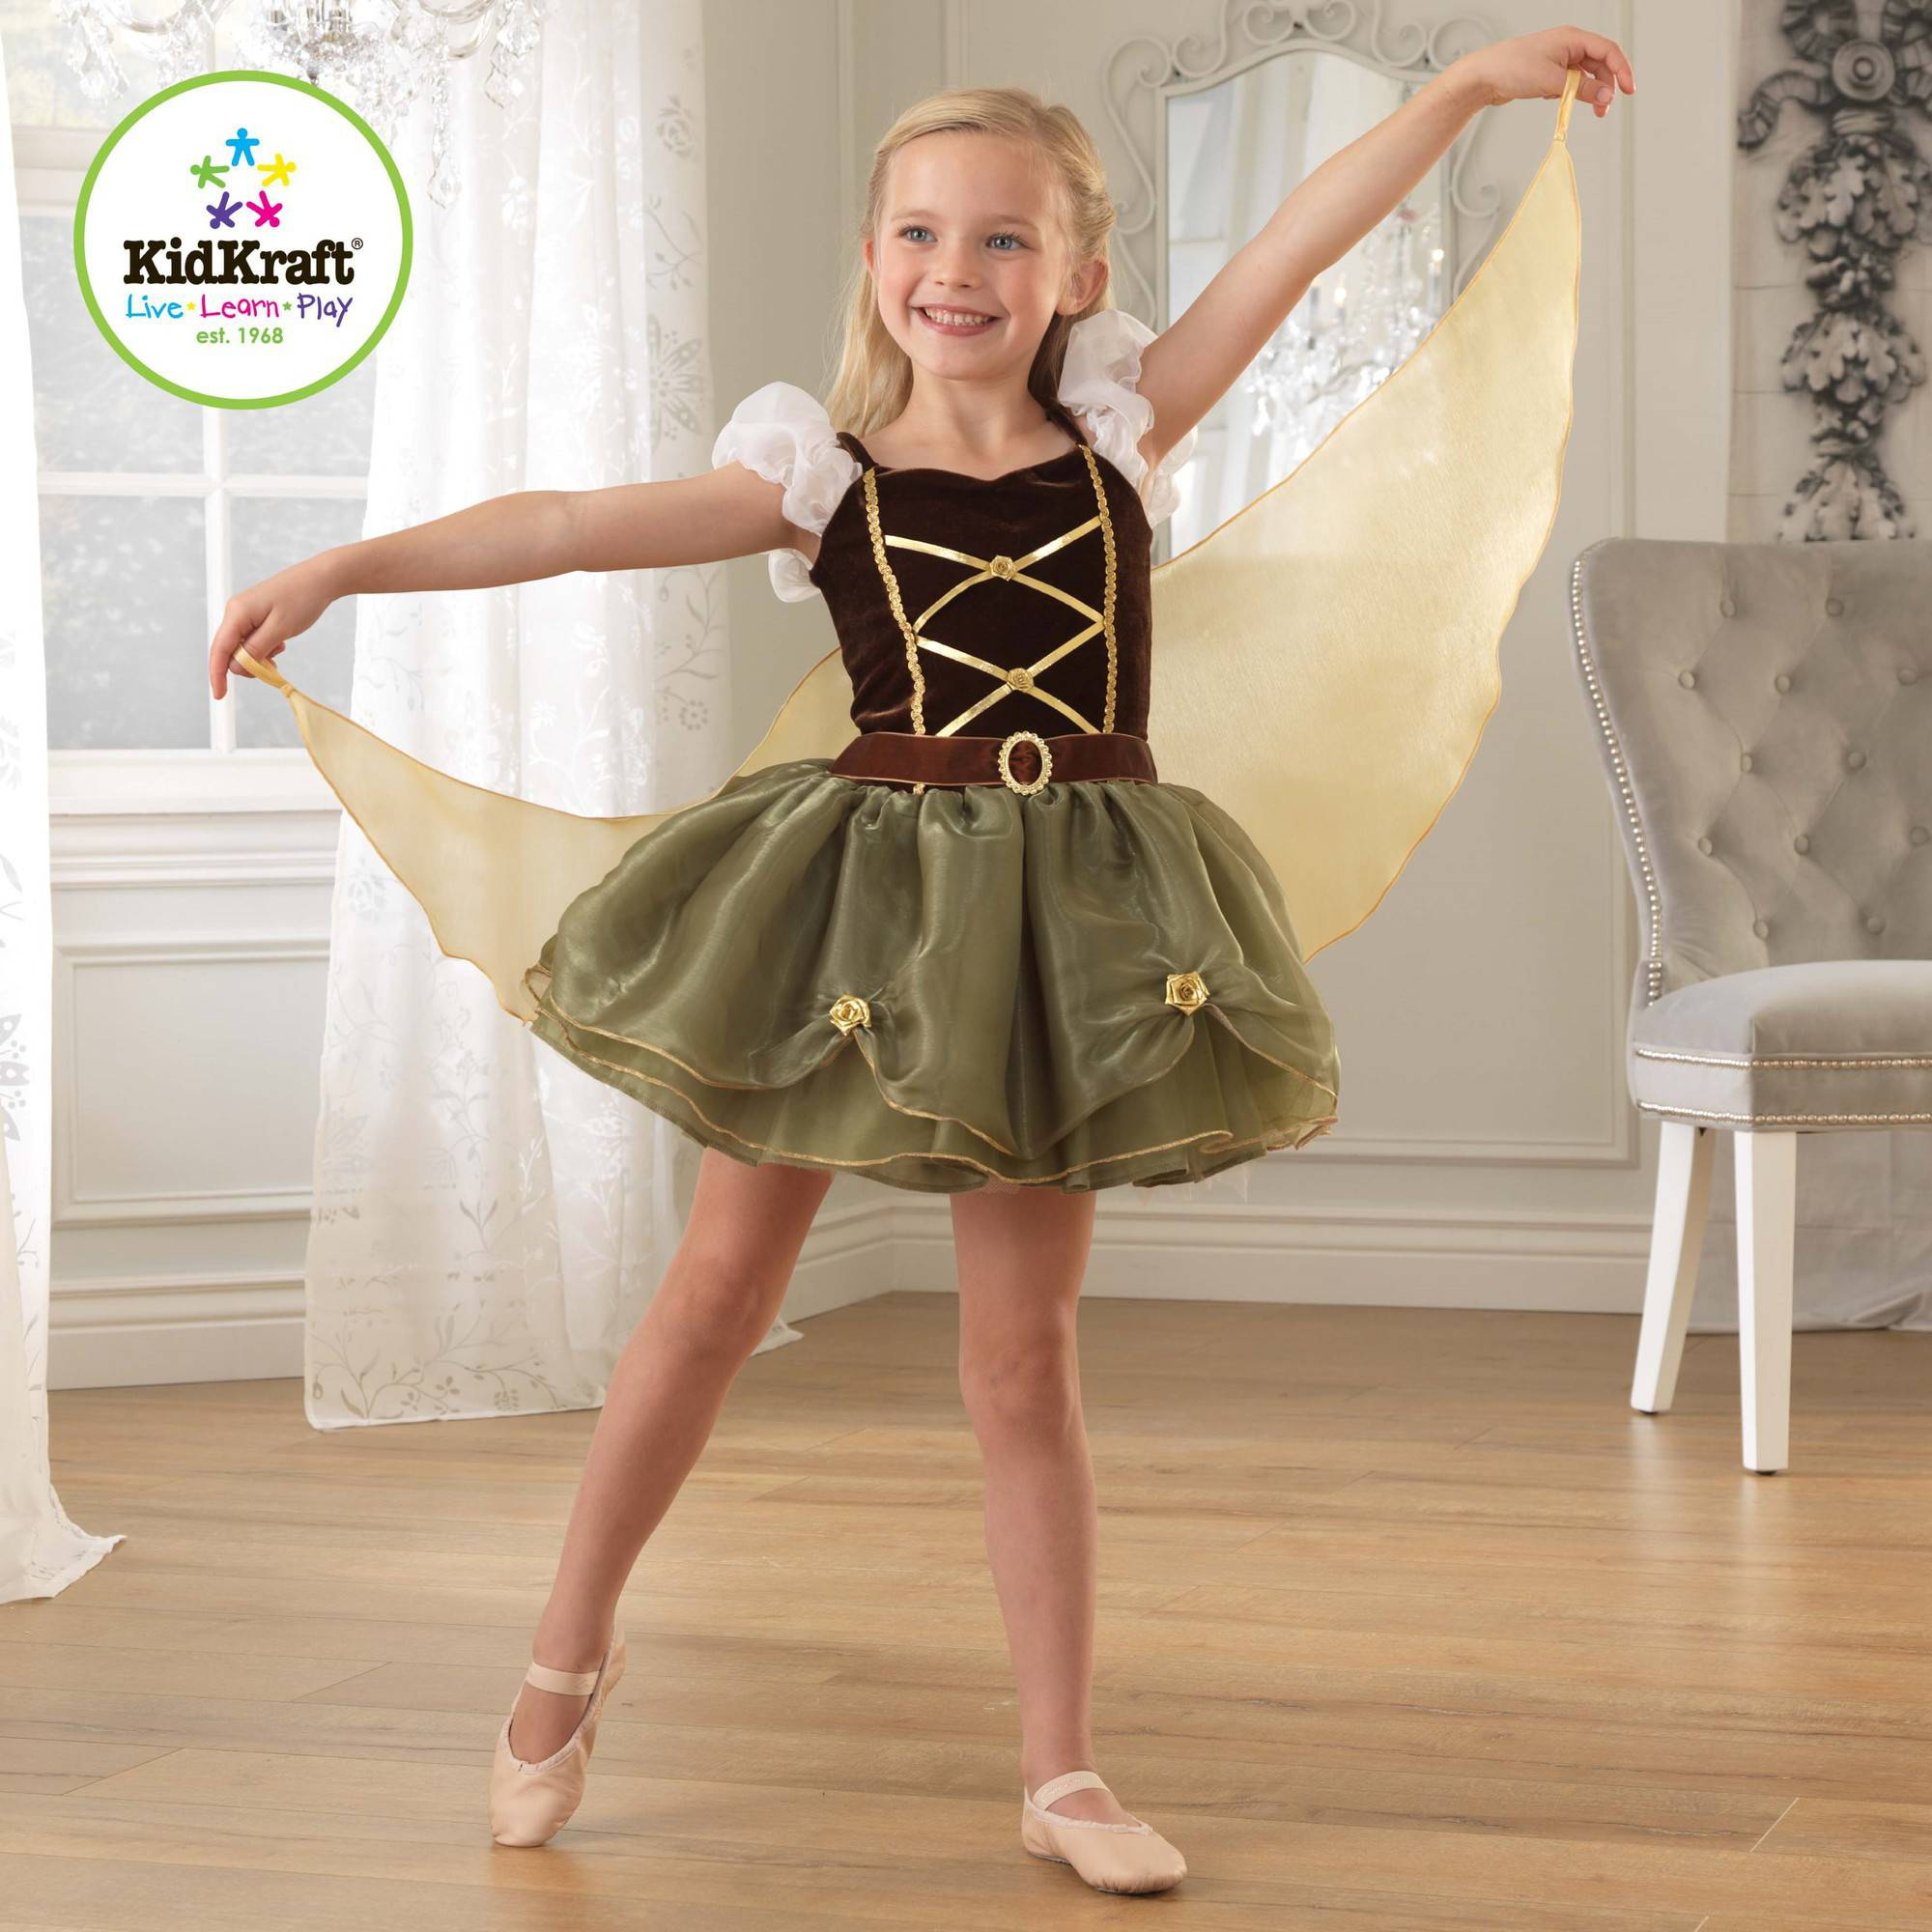 KidKraft Pirate Winged Fairy Dress Up Costume